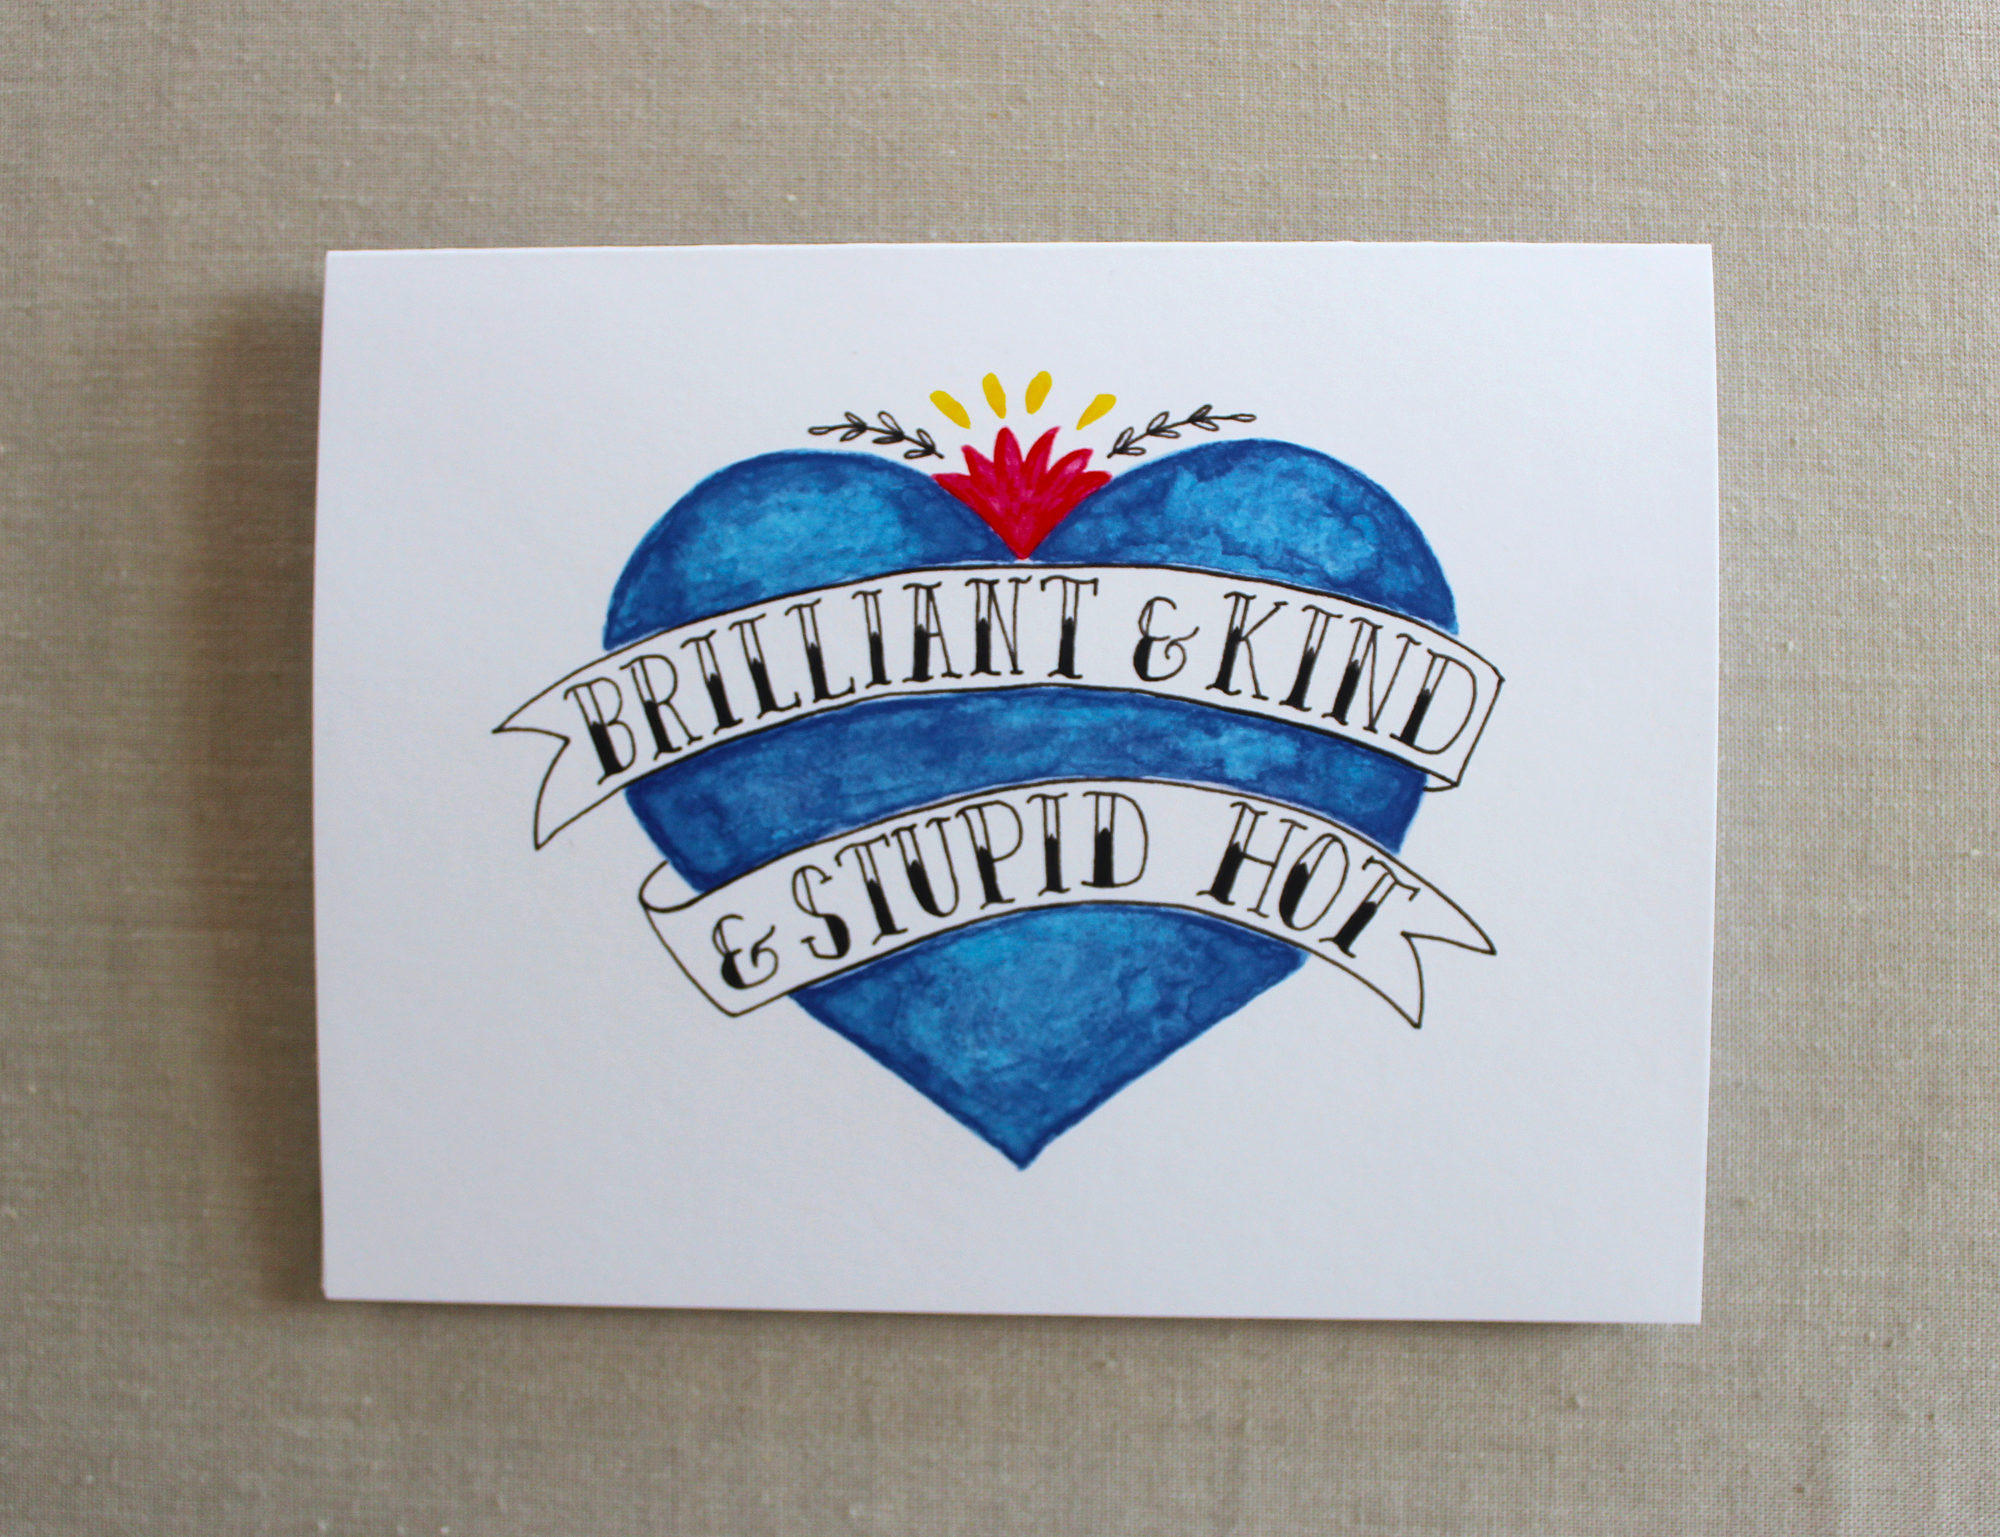 Brilliant And Kind Best Friend Card Messy Bed Studio